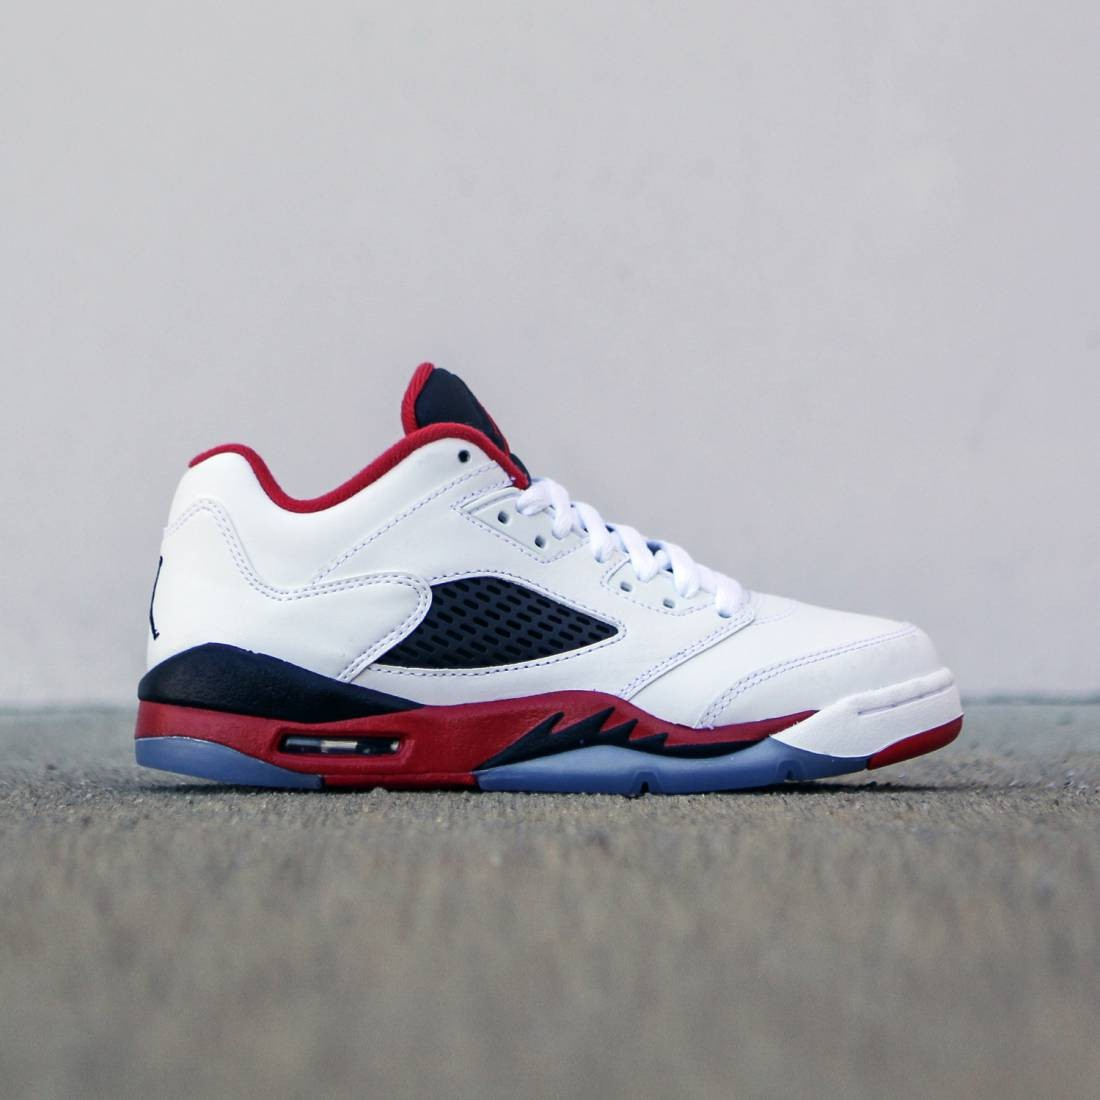 new styles e0200 9e62e Air Jordan 5 Retro Low GS Fire Red Big Kids (white / black / fire red)